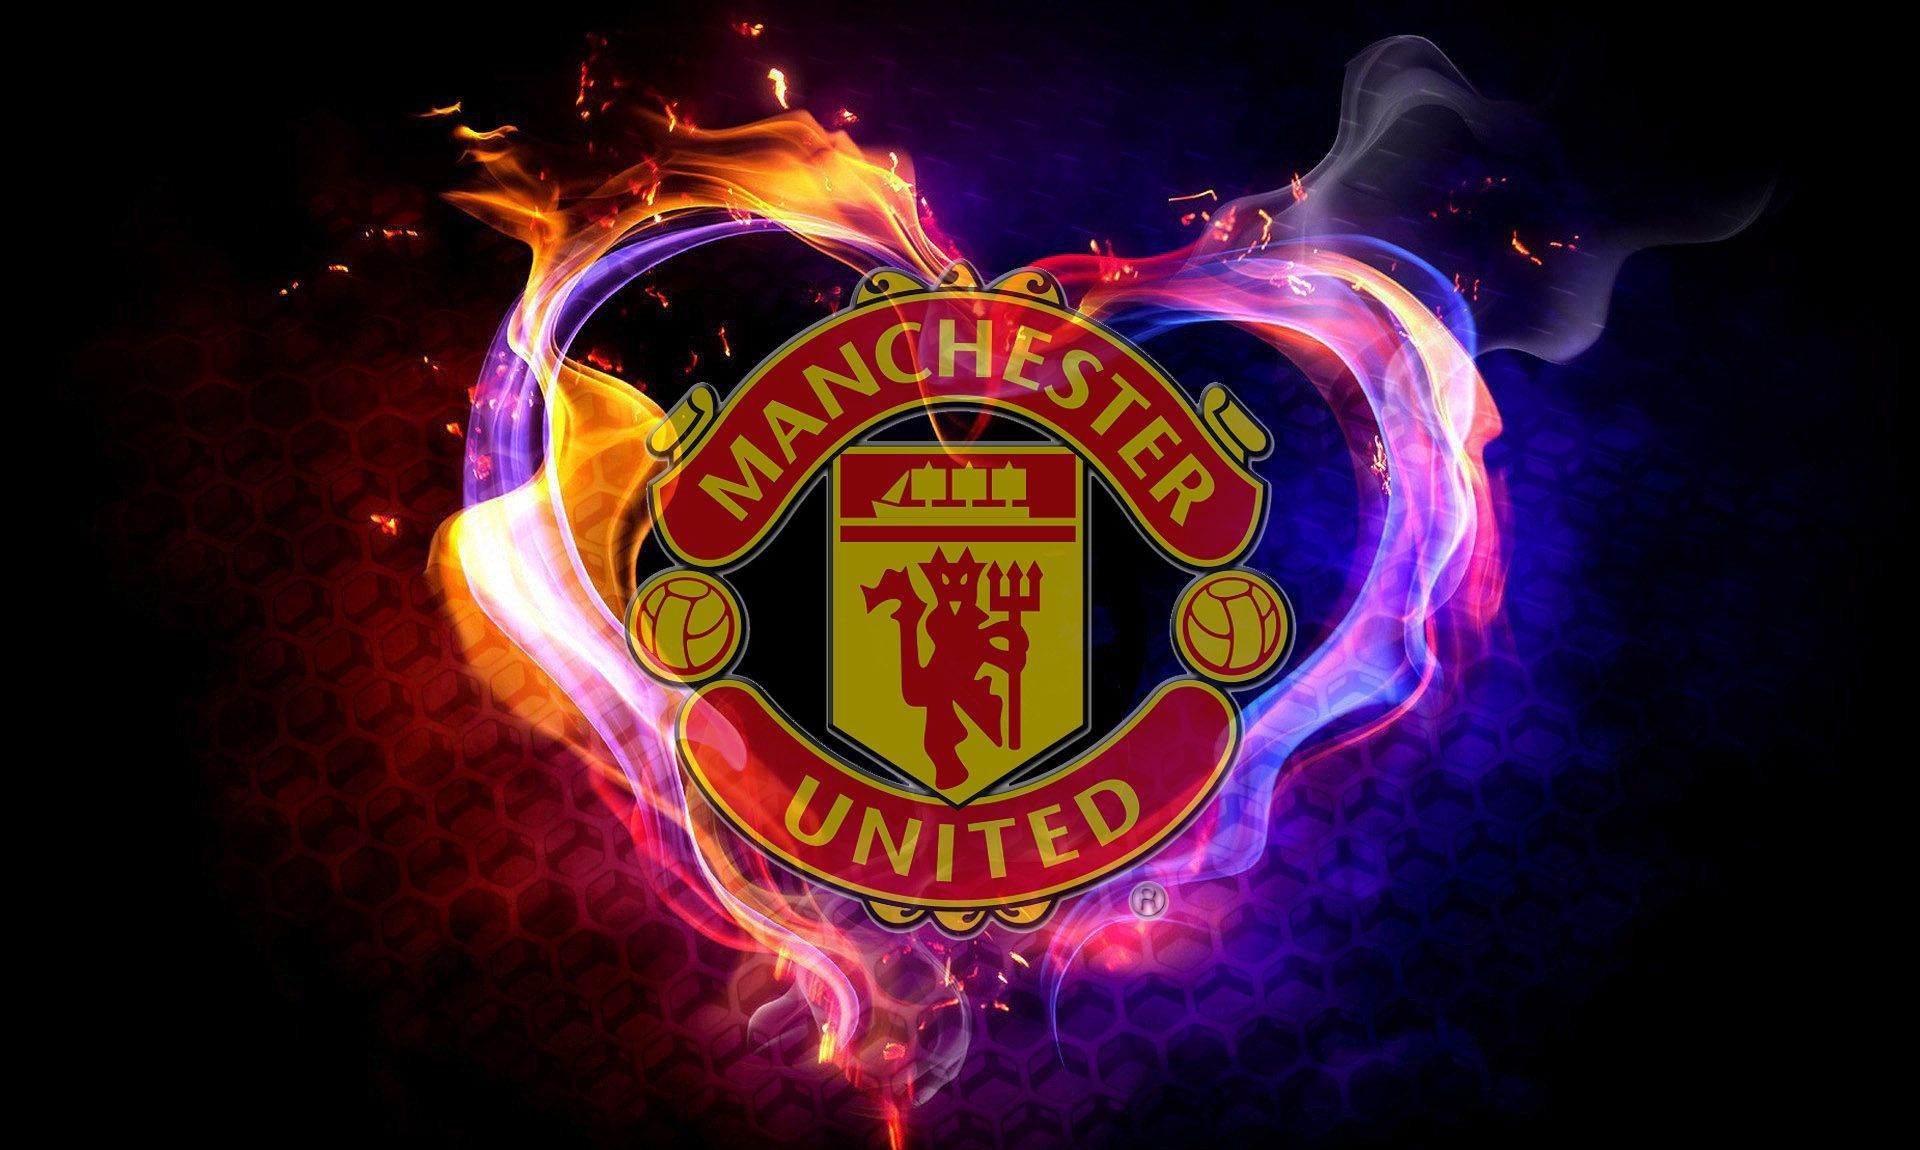 Manchester United Wallpaper Hd Pack Sky Ross 2016 06 14 Manchester United Wallpaper Manchester United Logo Manchester United Images